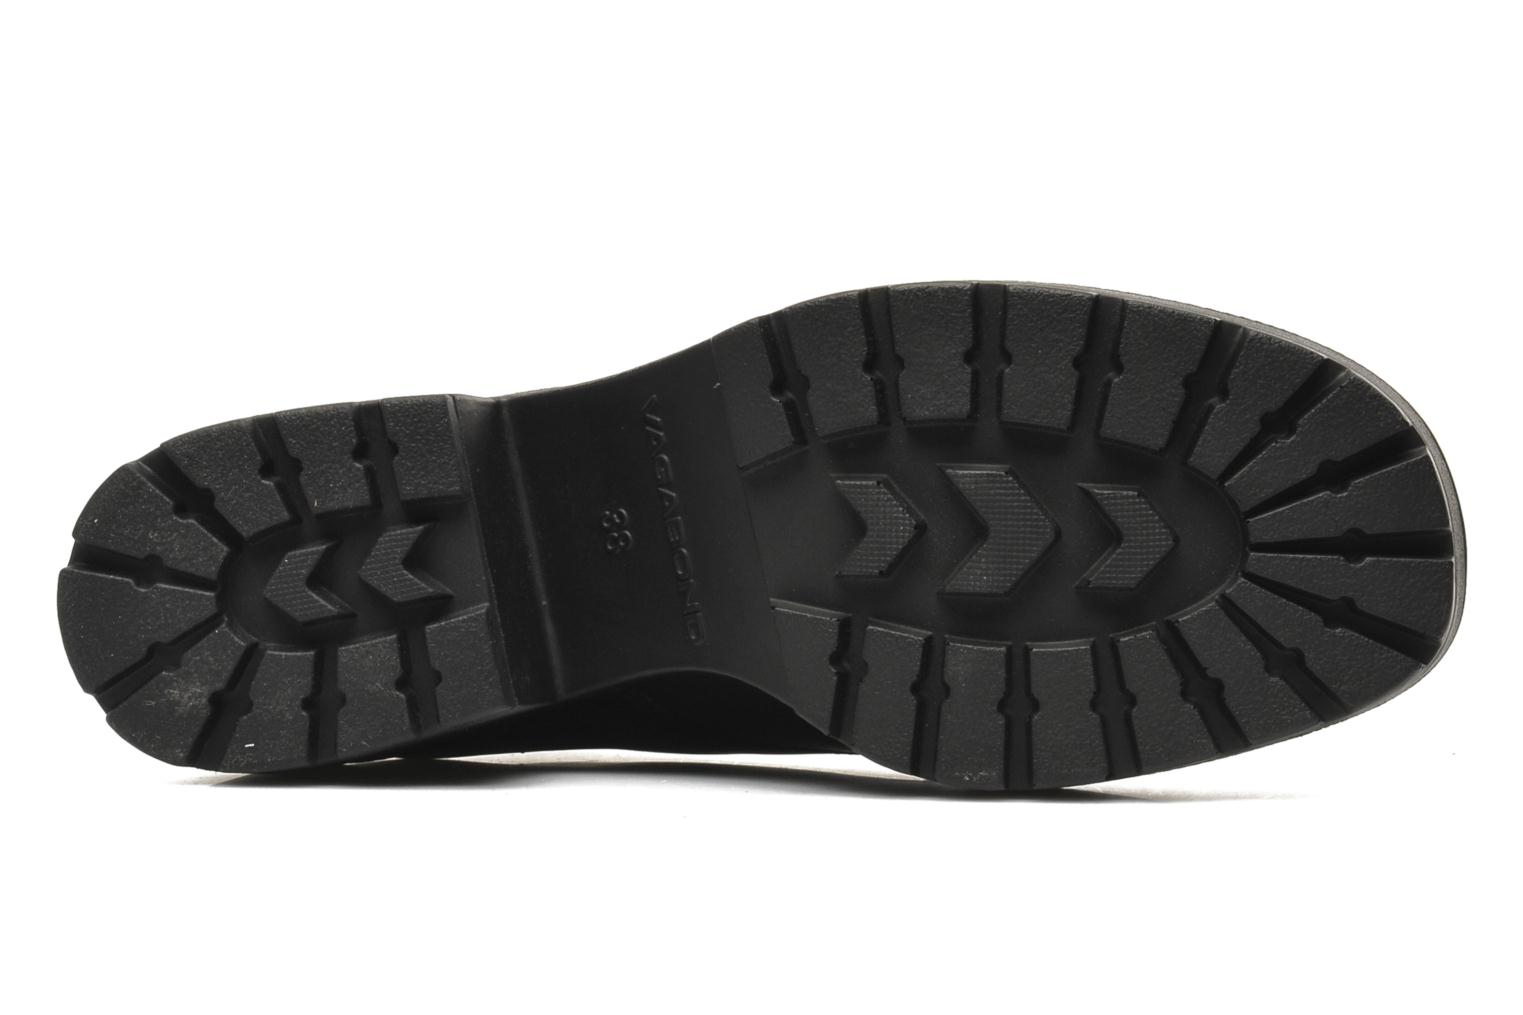 DIOON 3847-301 20 black leather